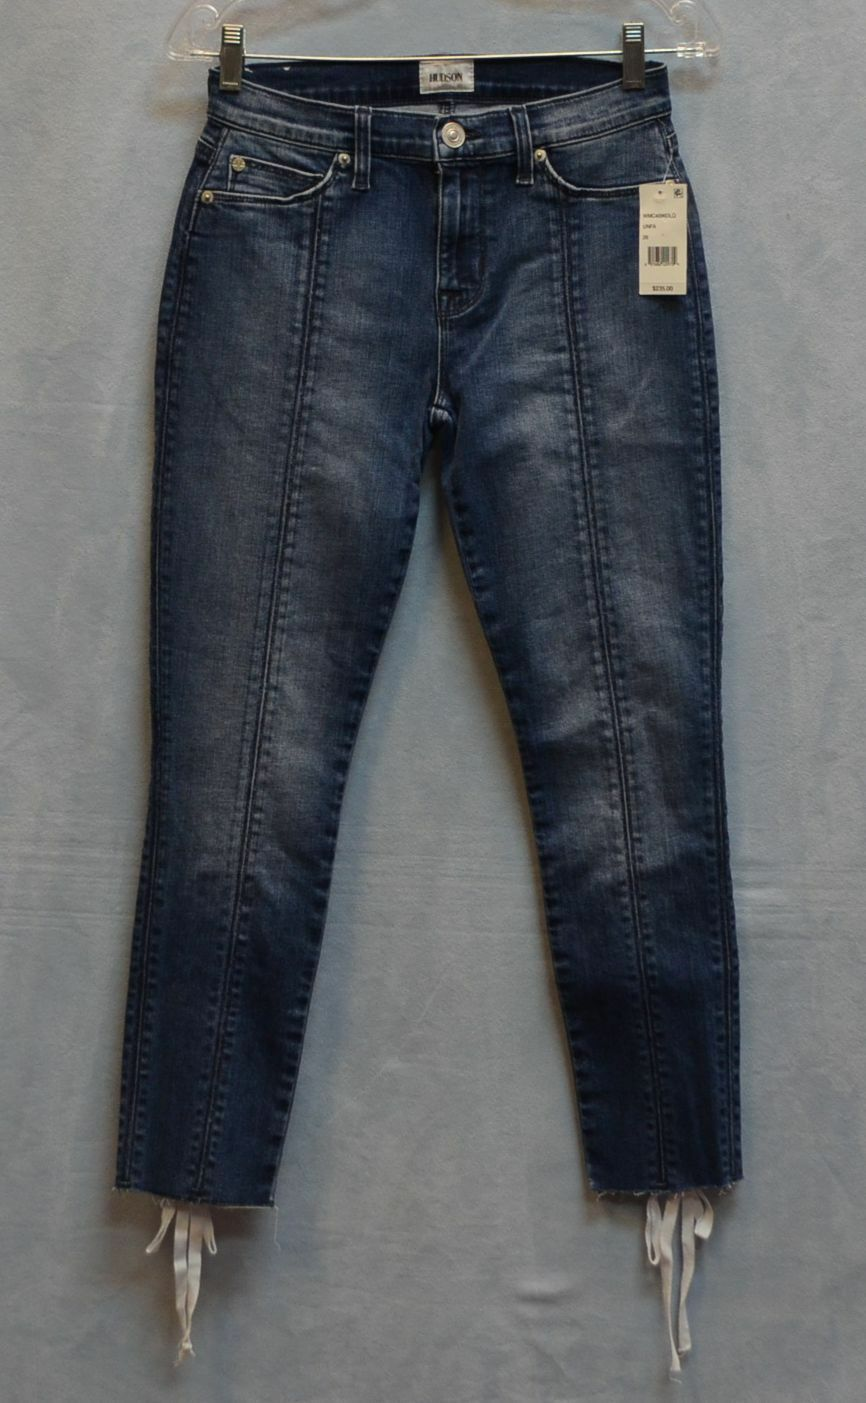 B5 NWT HUDSON Nico Midrise Lace Up Super Skinny Crop Jeans Size 26